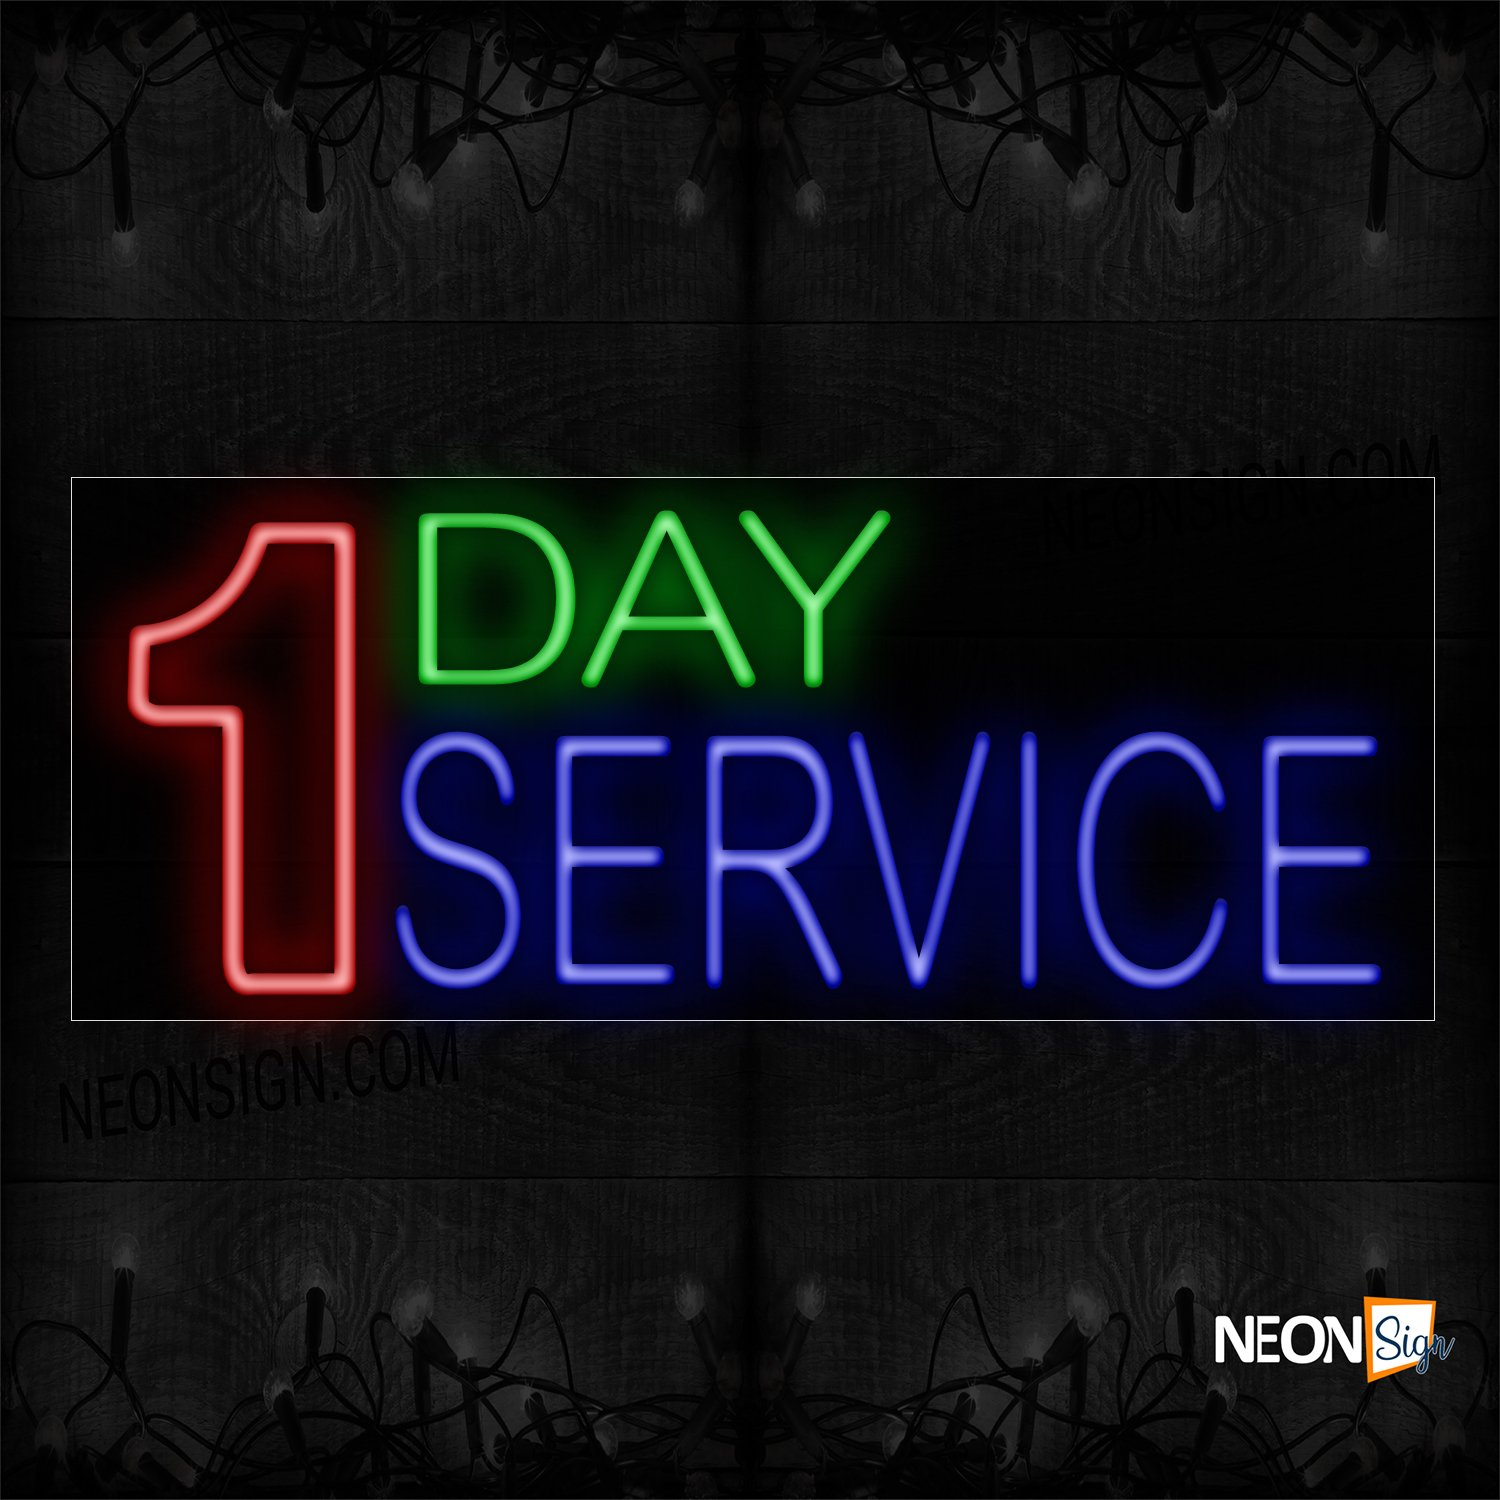 Image of 14475 1 Day Service Neon Signs_13x32 Black Backing